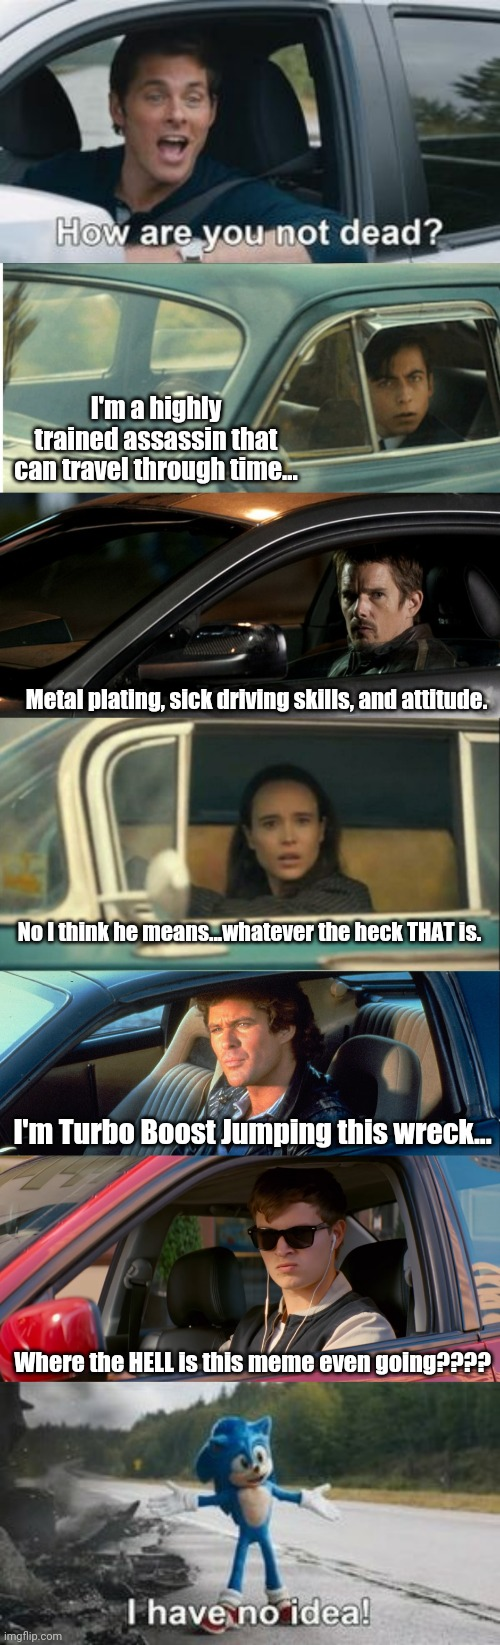 Mash Up central |  I'm a highly trained assassin that can travel through time... Metal plating, sick driving skills, and attitude. No I think he means...whatever the heck THAT is. I'm Turbo Boost Jumping this wreck... Where the HELL is this meme even going???? | image tagged in sonic,umbrella,knight rider | made w/ Imgflip meme maker